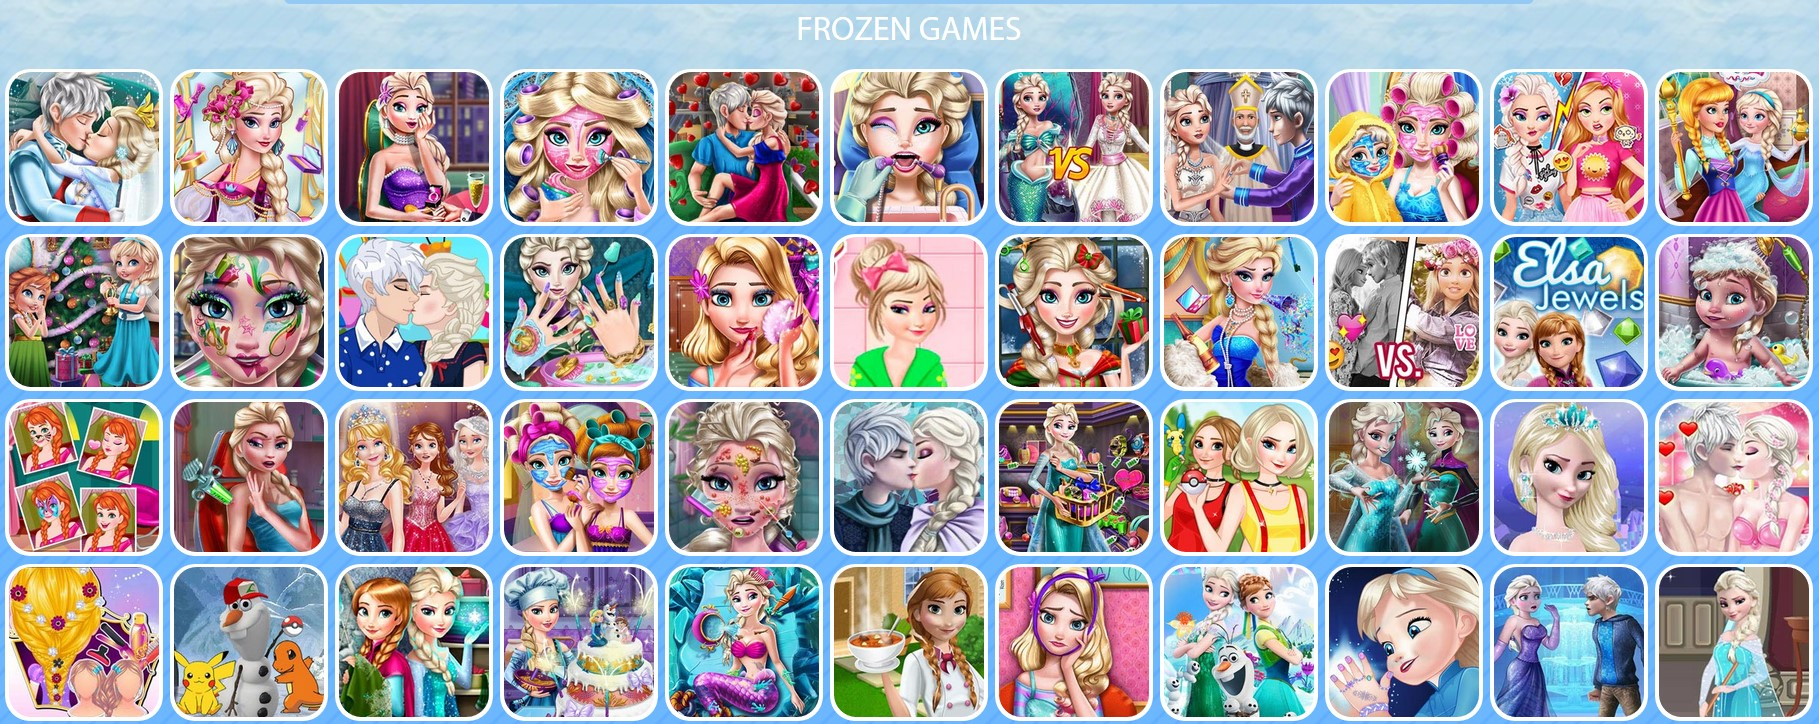 2c52baa65ecdf Frozen  Beautiful Online Games for Your Children